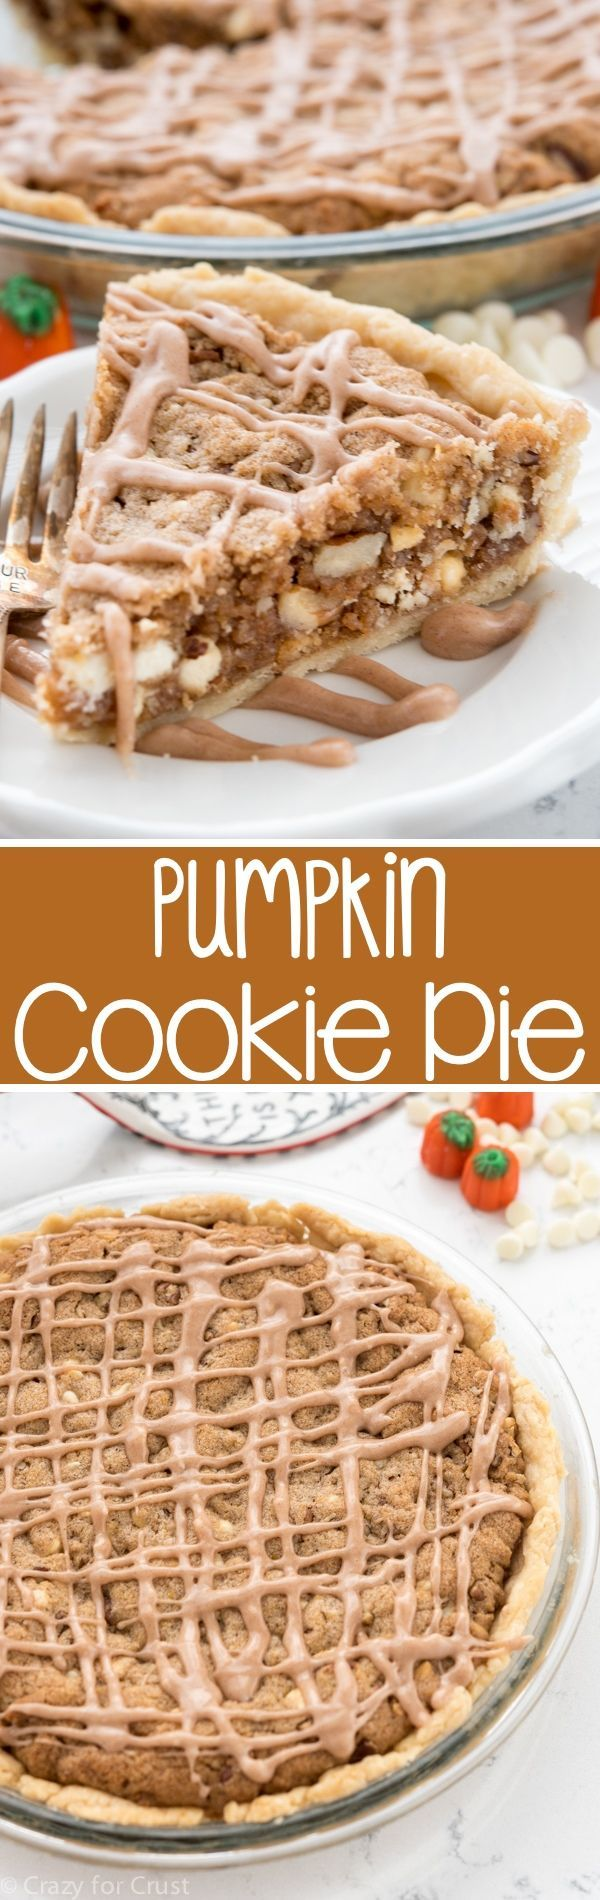 This easy Pumpkin Cookie Pie recipe comes together in just minutes. It's perfect for Thanksgiving!